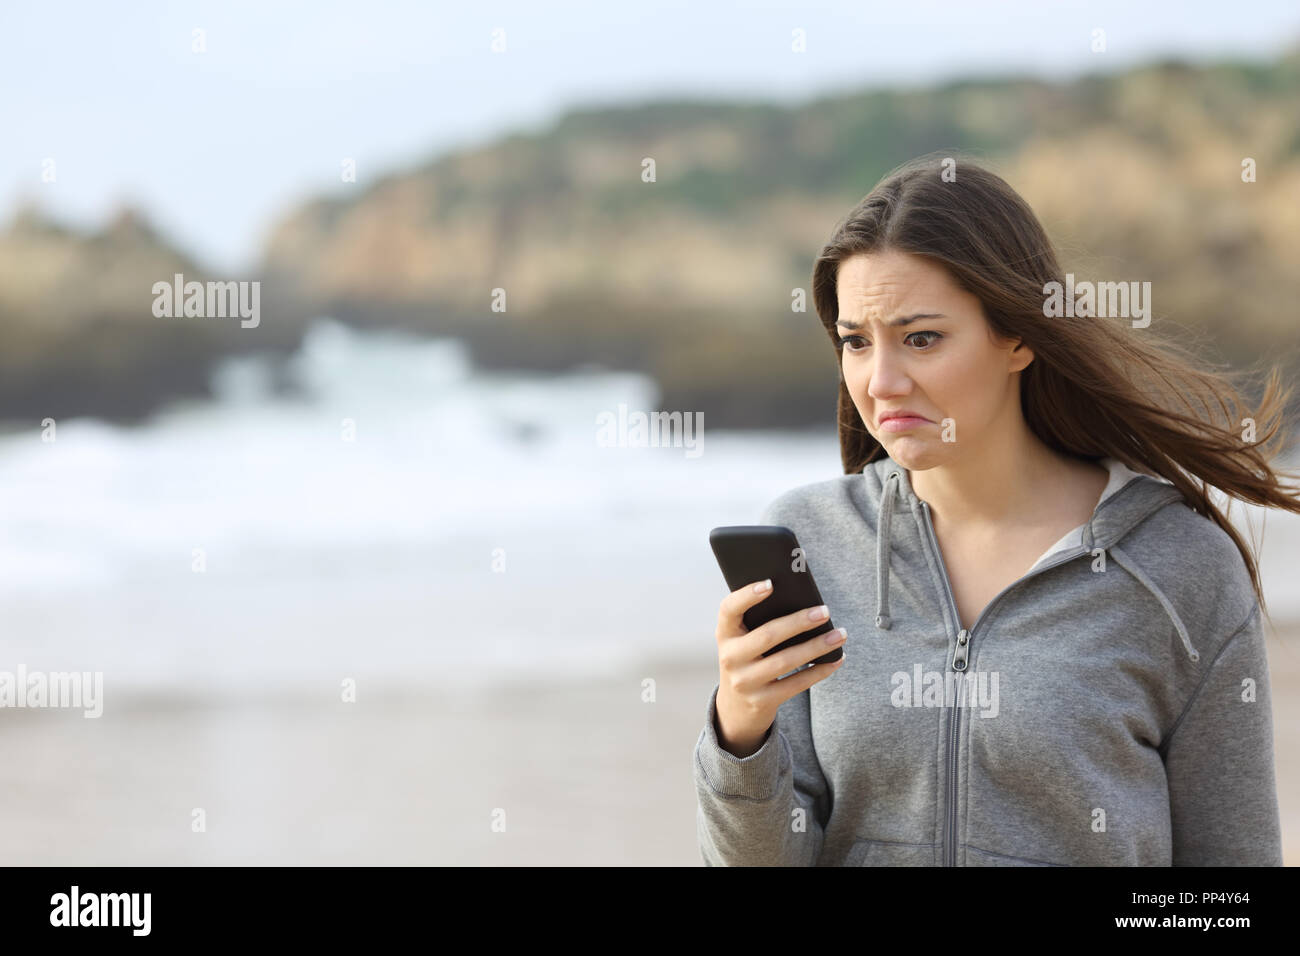 Disappointed teen reading phone message and grimacing walking on the beach - Stock Image